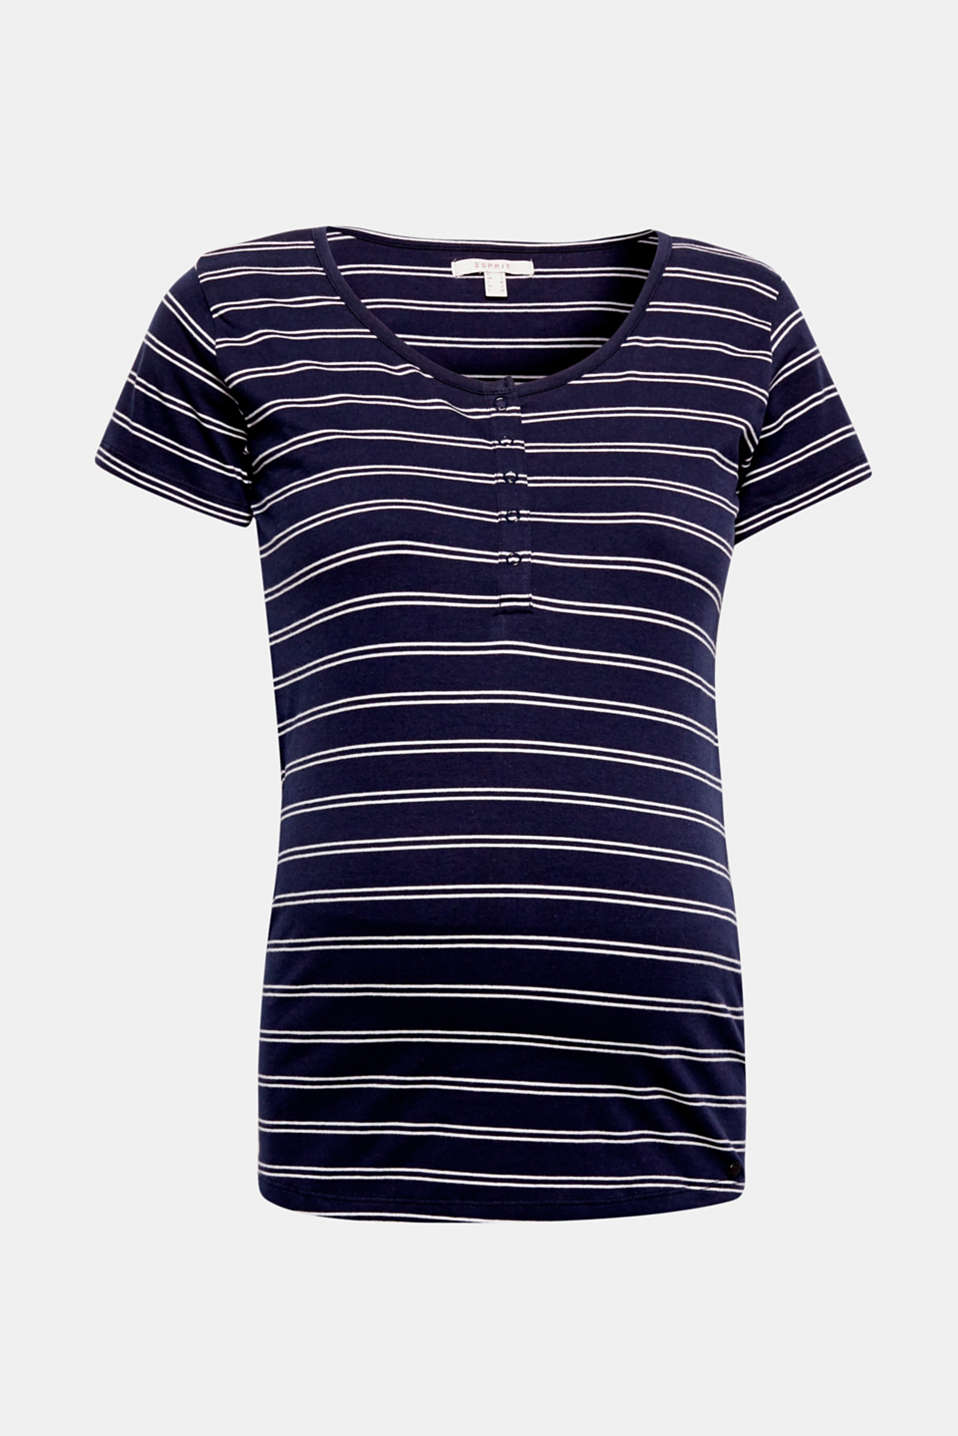 Comfy nautical look: soft and stretchy T-shirt made of premium, environmentally-friendly organic cotton with stripes, a press-stud placket and practical nursing access!